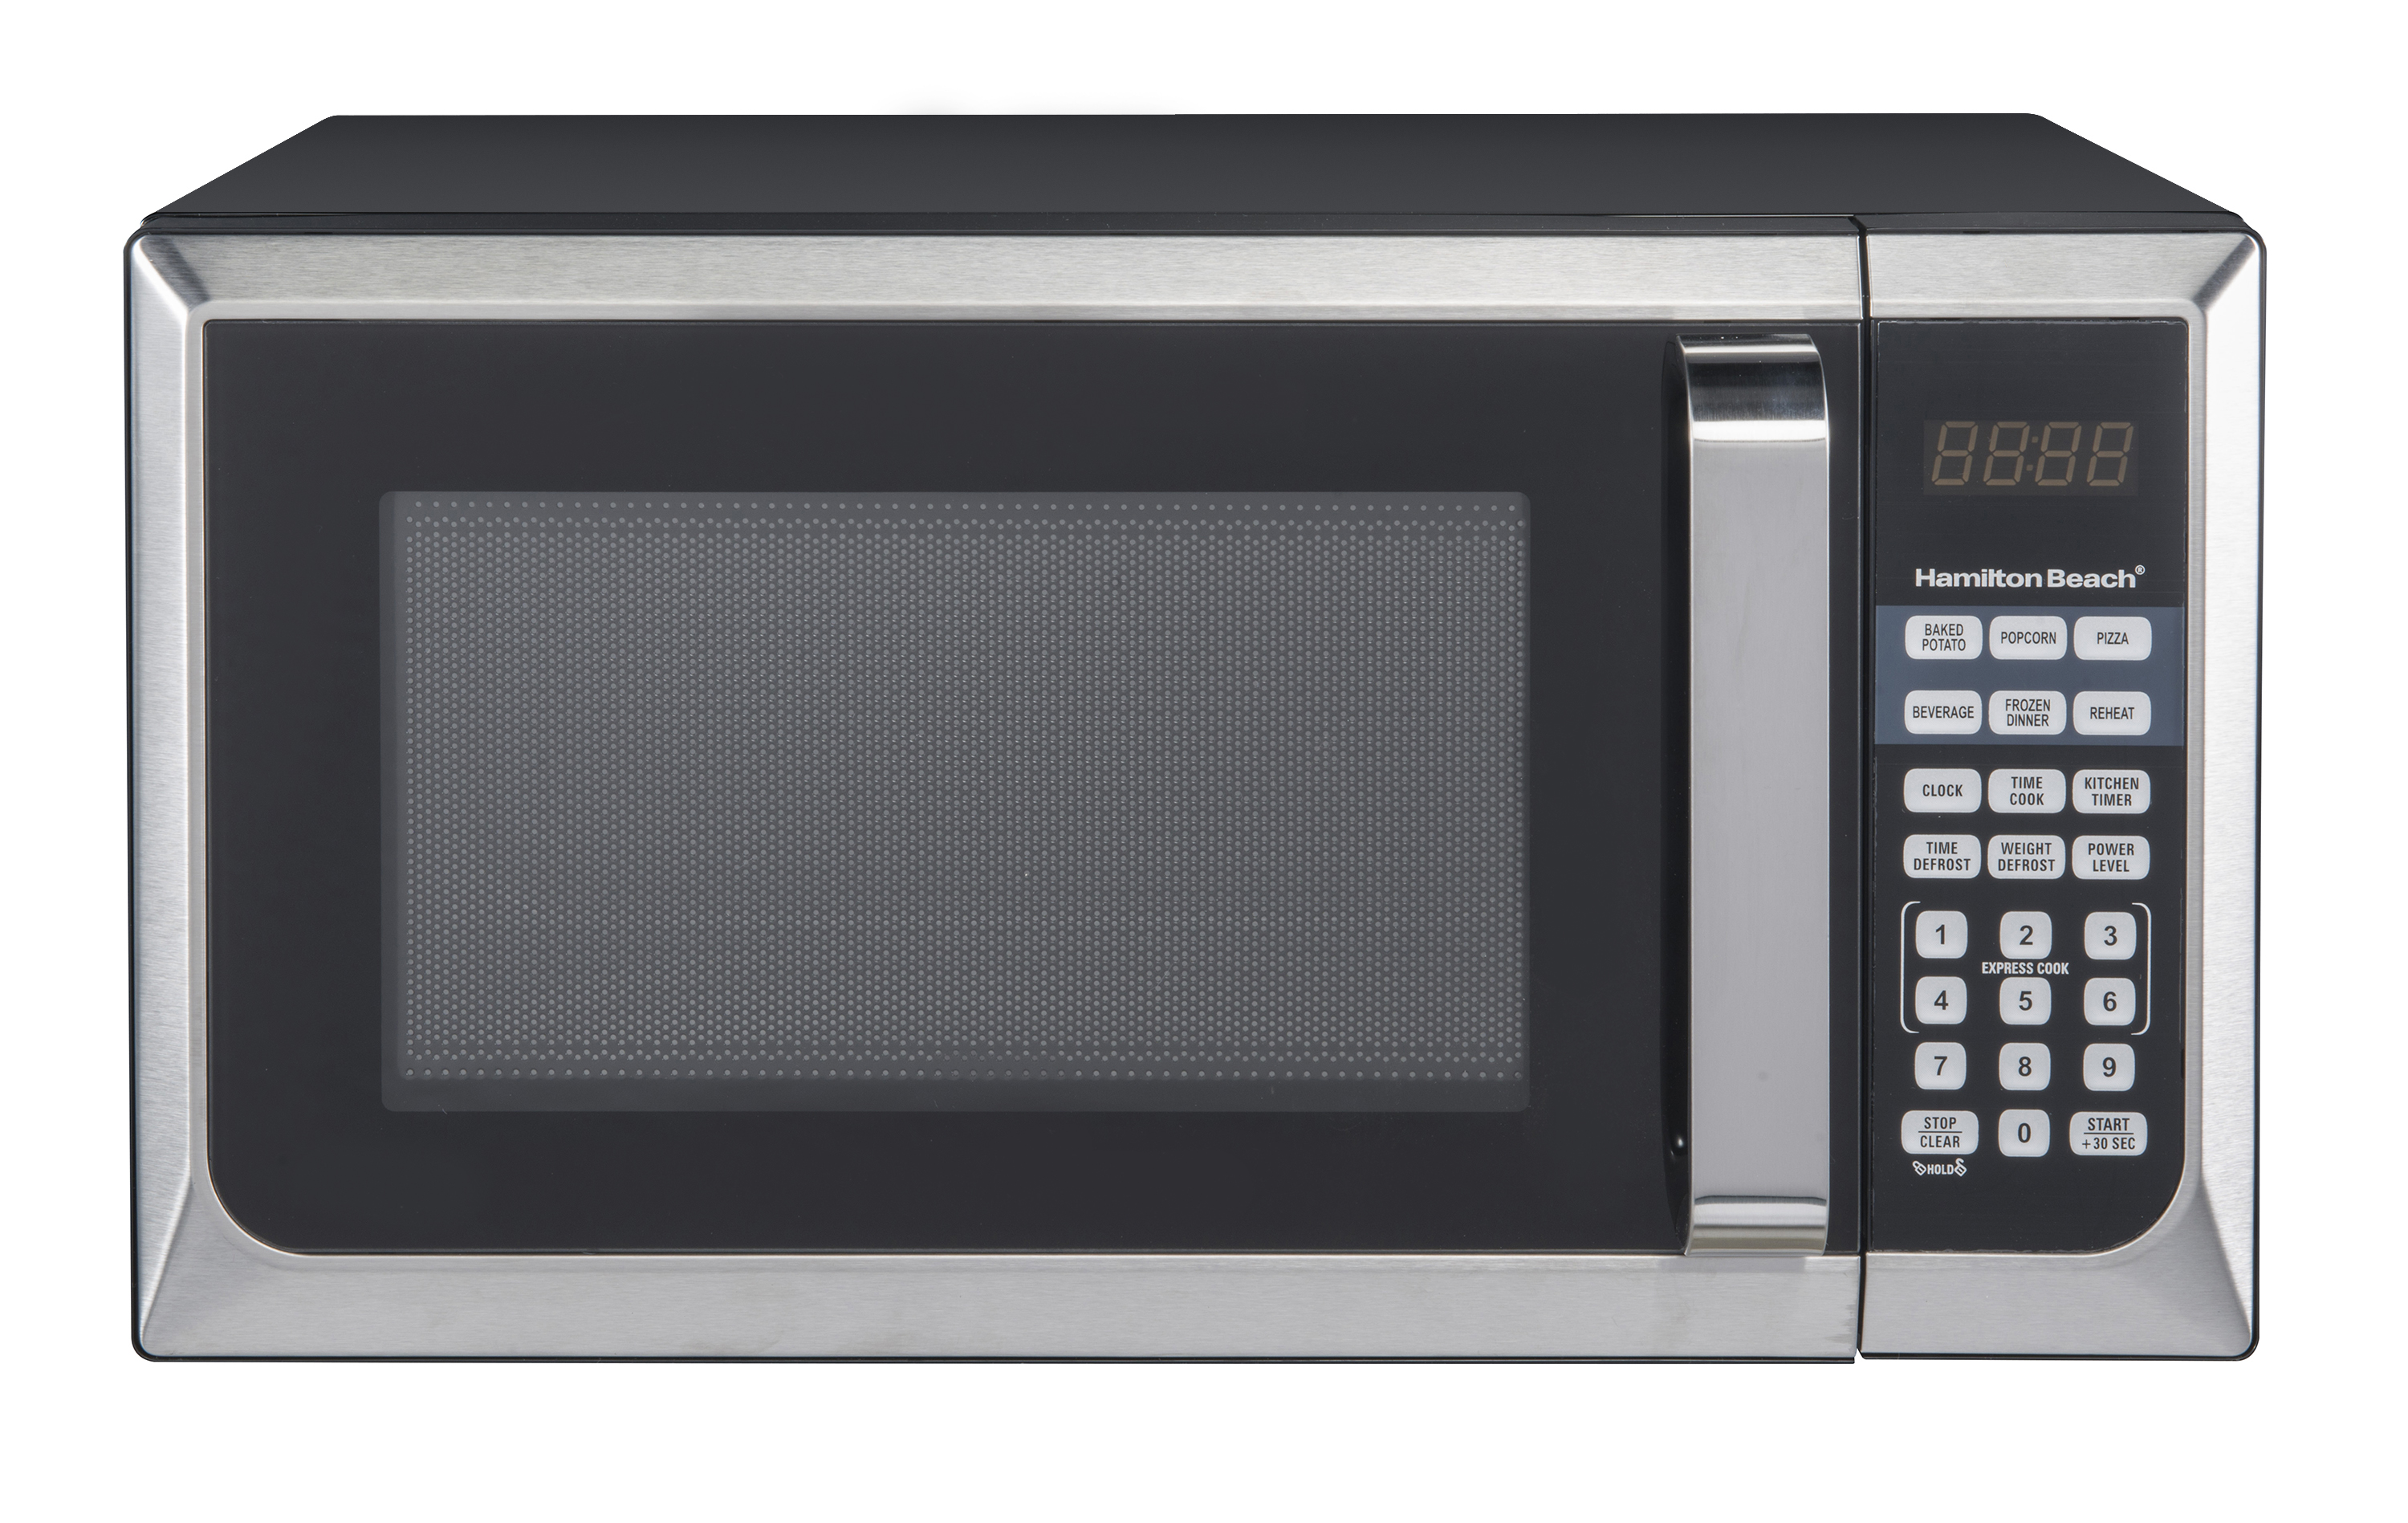 hamilton beach 0 9 cu ft stainless steel countertop microwave oven